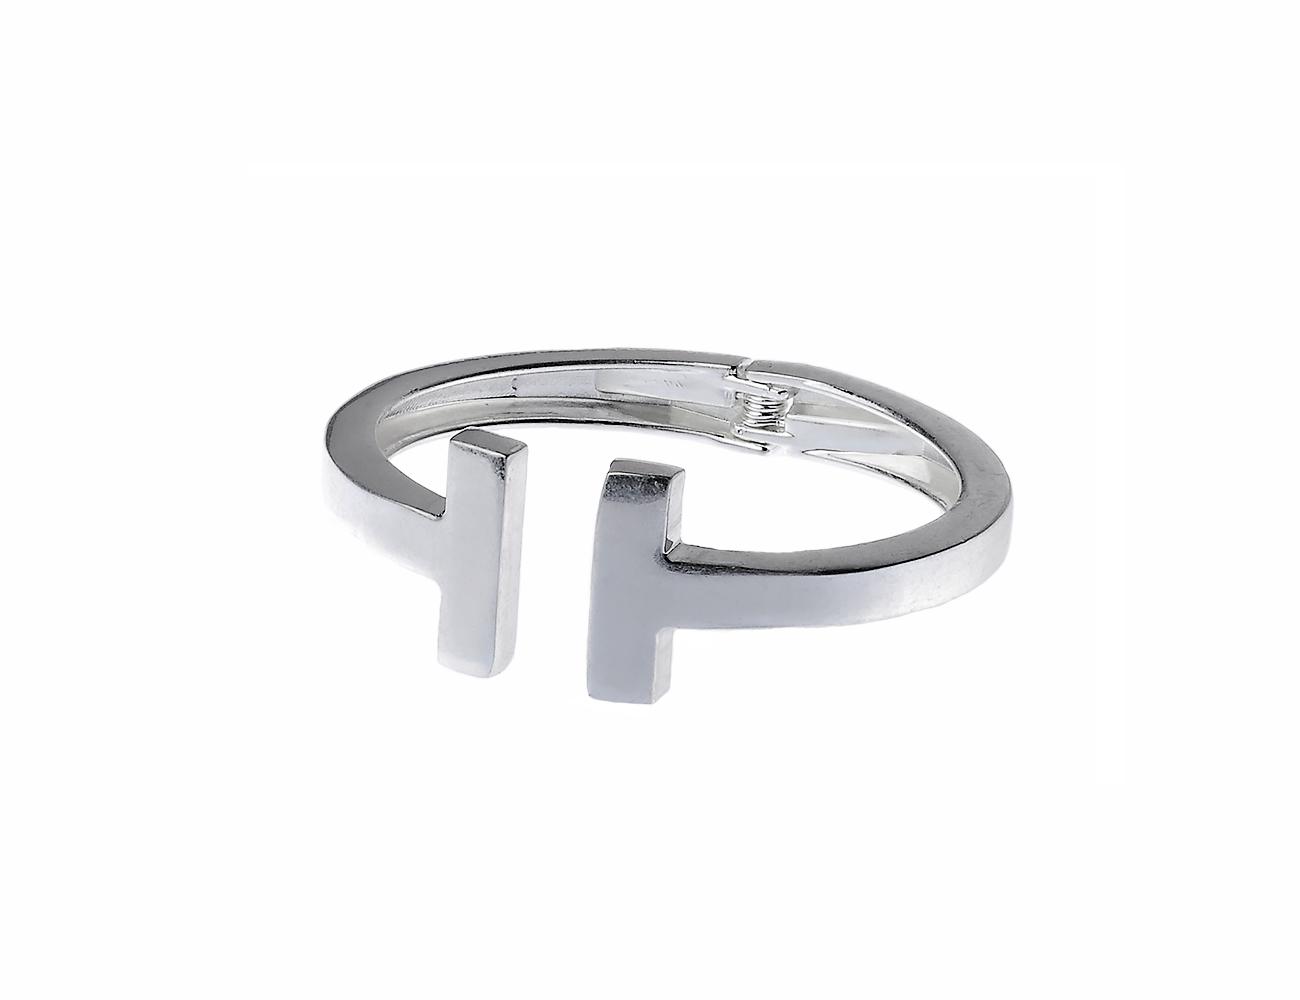 Worm Silver Hinged T-Cube Design Bangle